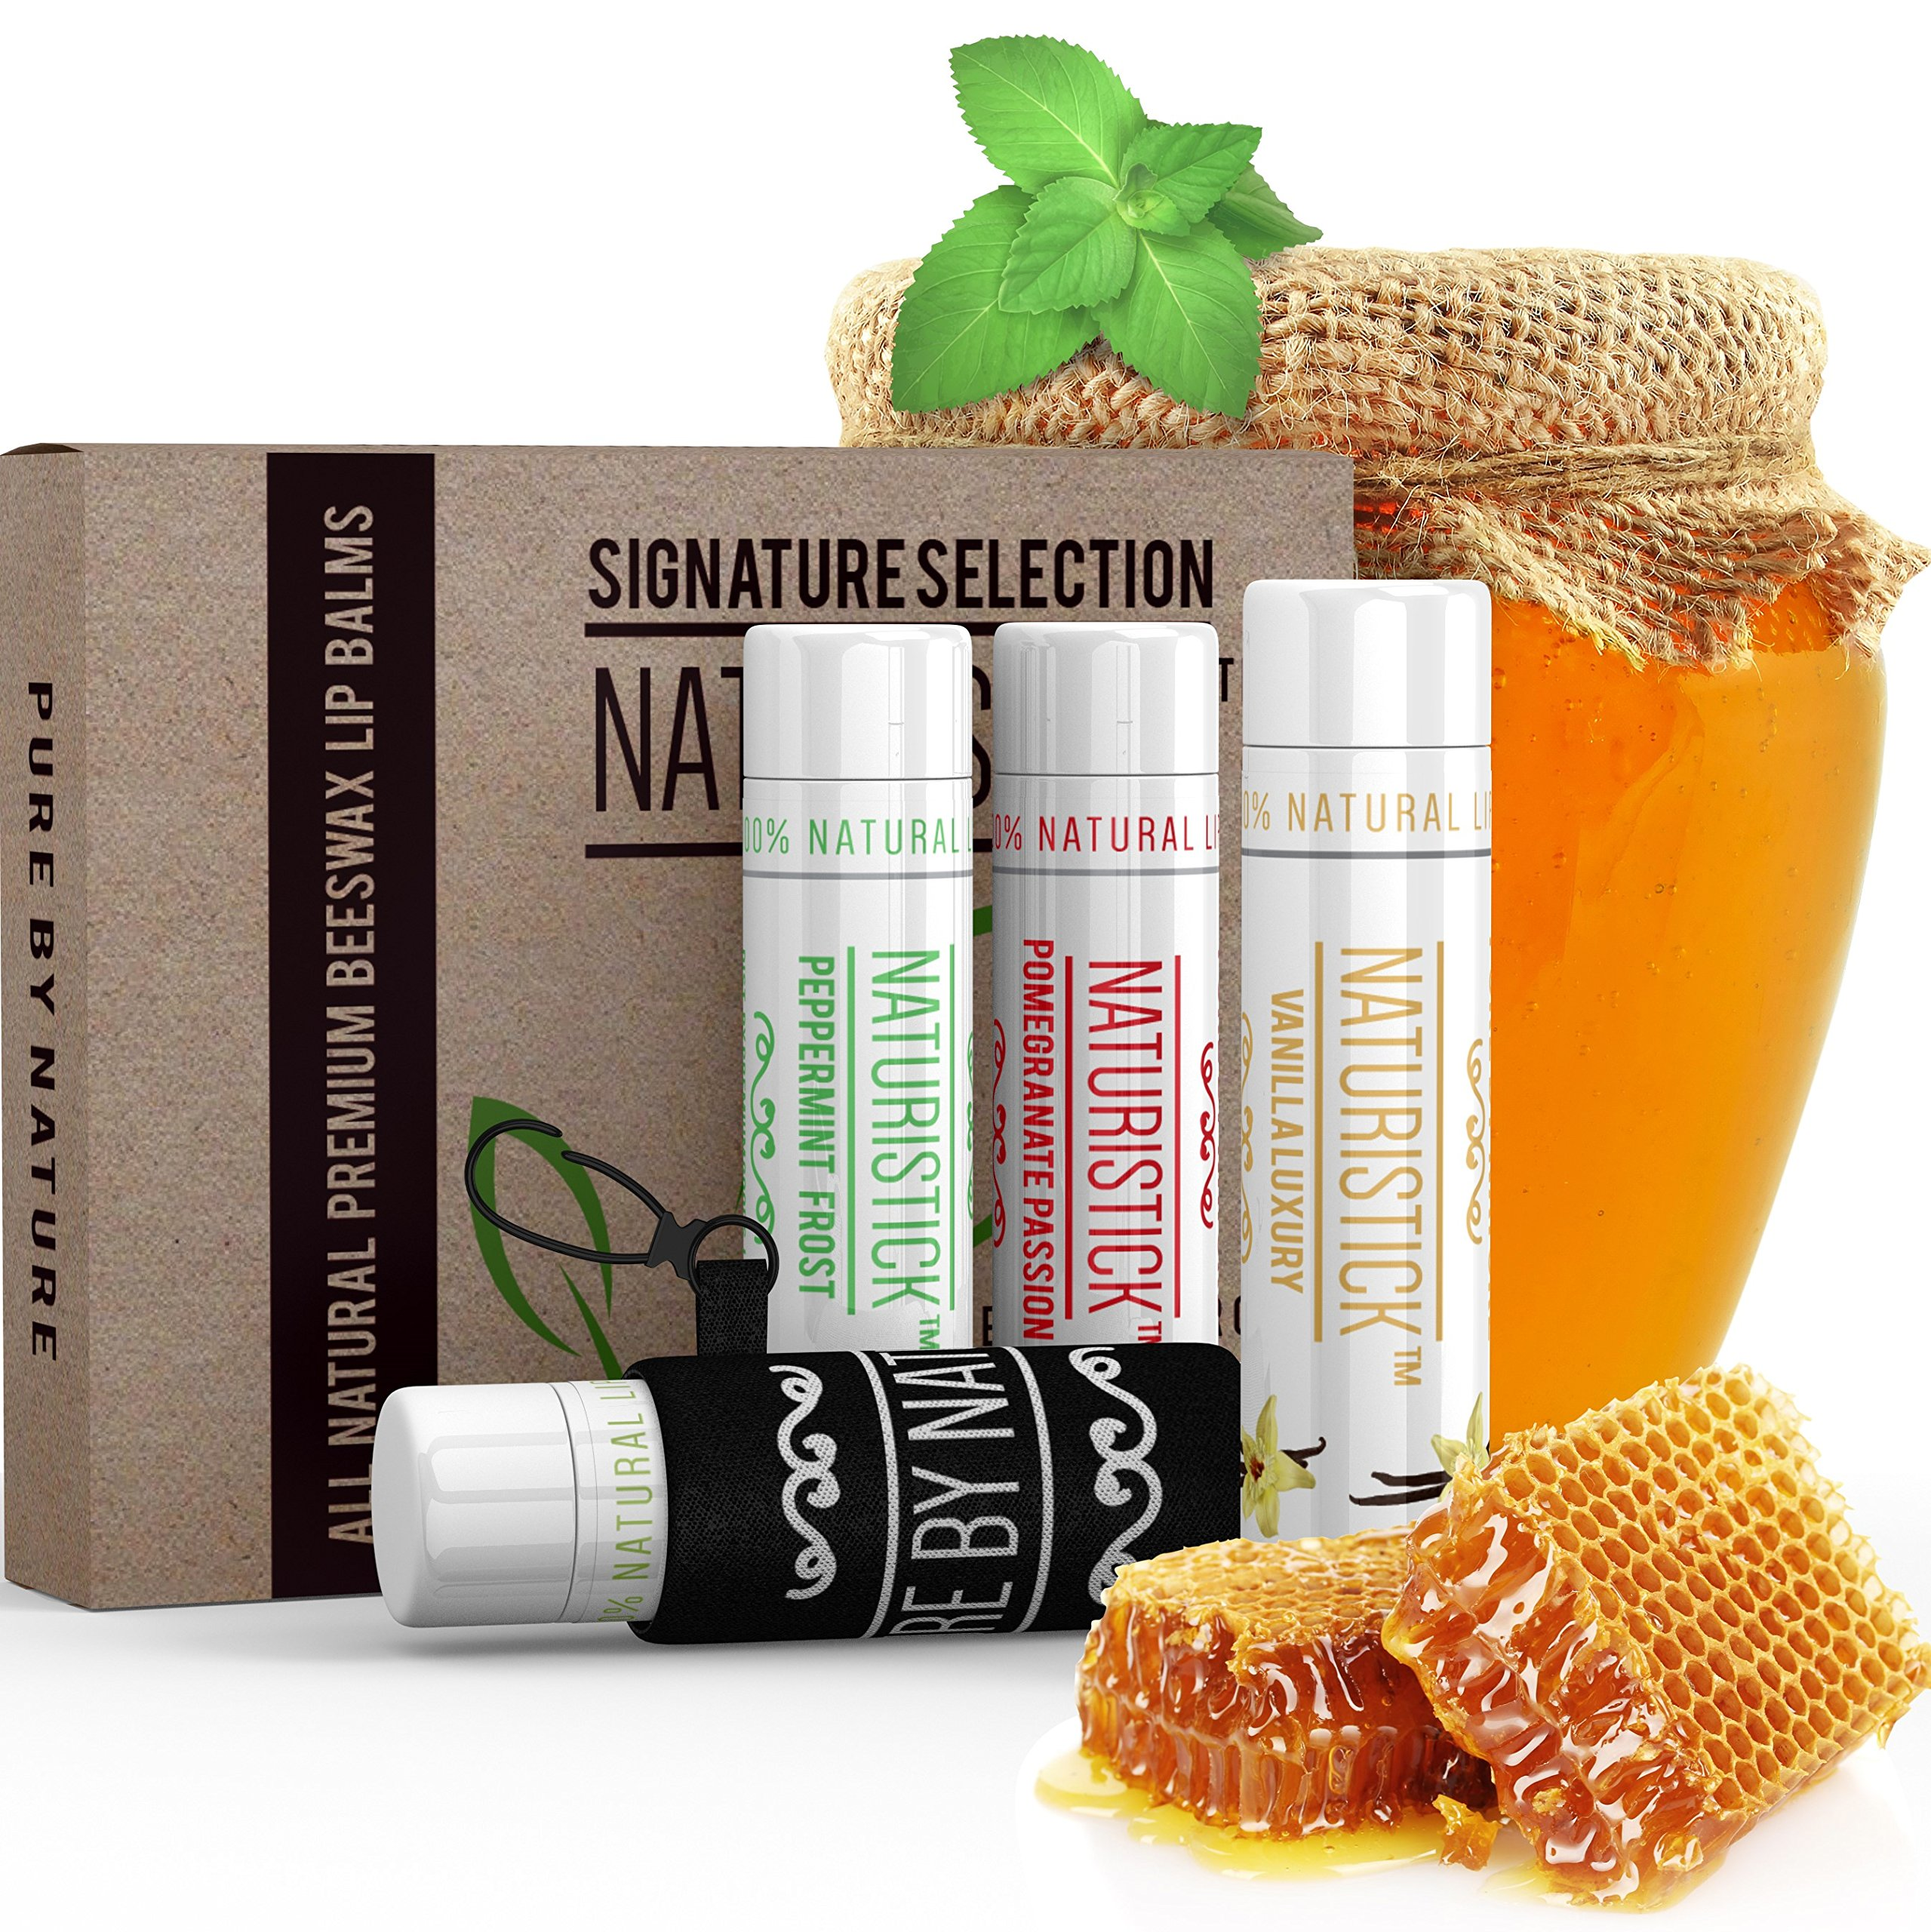 Lip Balm Gift Set Plus Holder-All Natural Beeswax Chapstick by Naturistick. Best Healing for Dry, Chapped Lips with Aloe Vera, Vitamin E and Coconut Oil for Men, Women and Kids, 4 Flavors, Made in USA